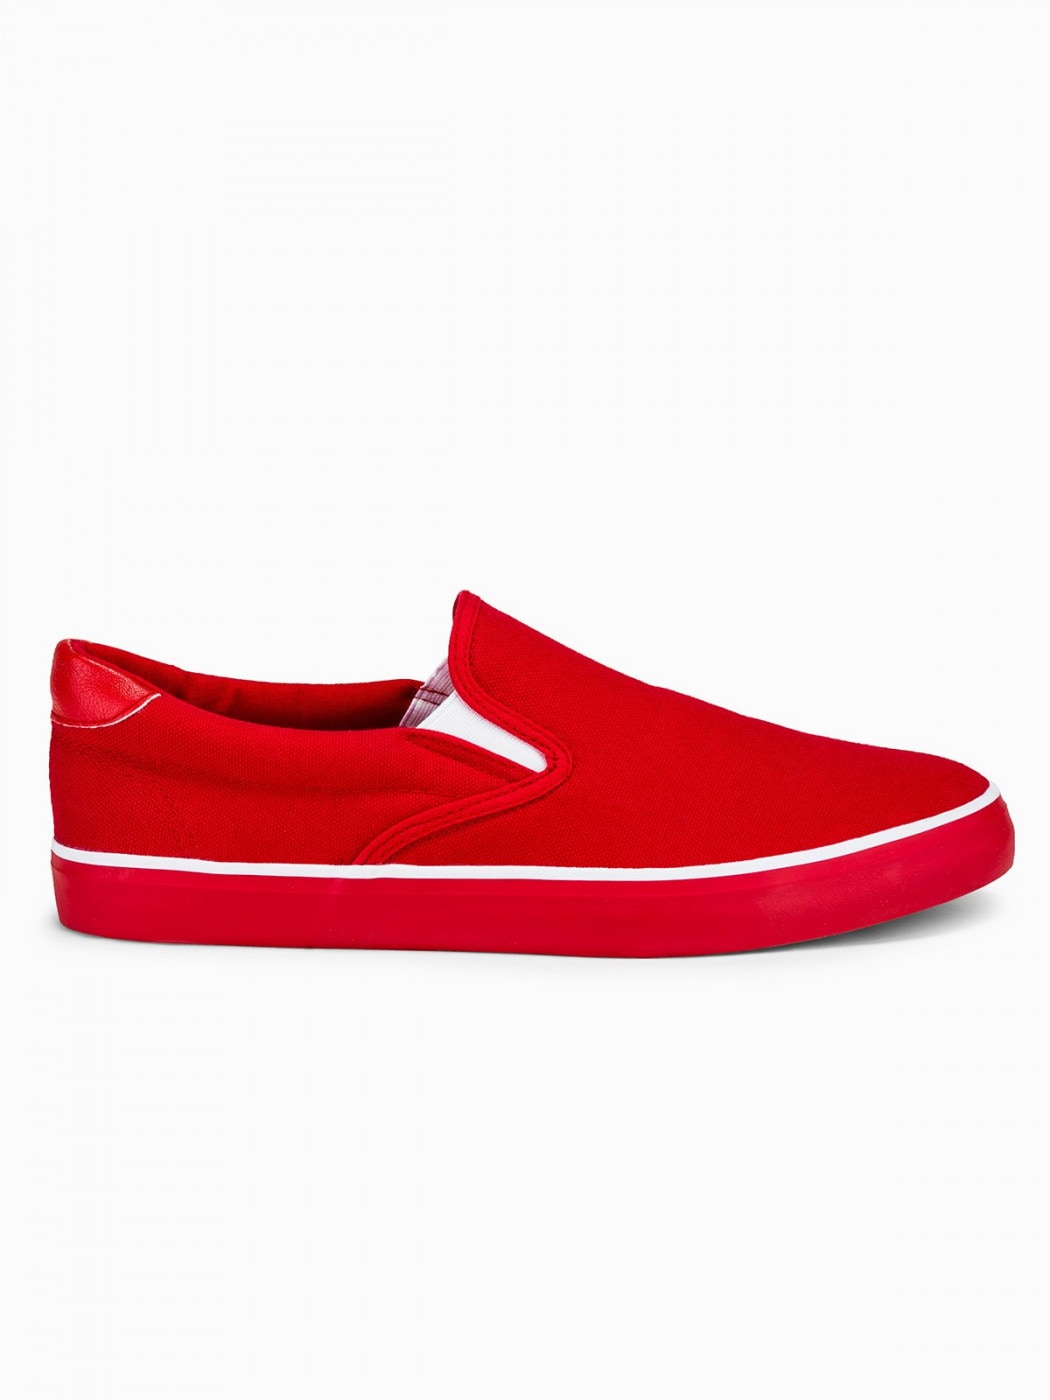 Ombre Clothing Men's slip on trainers T301